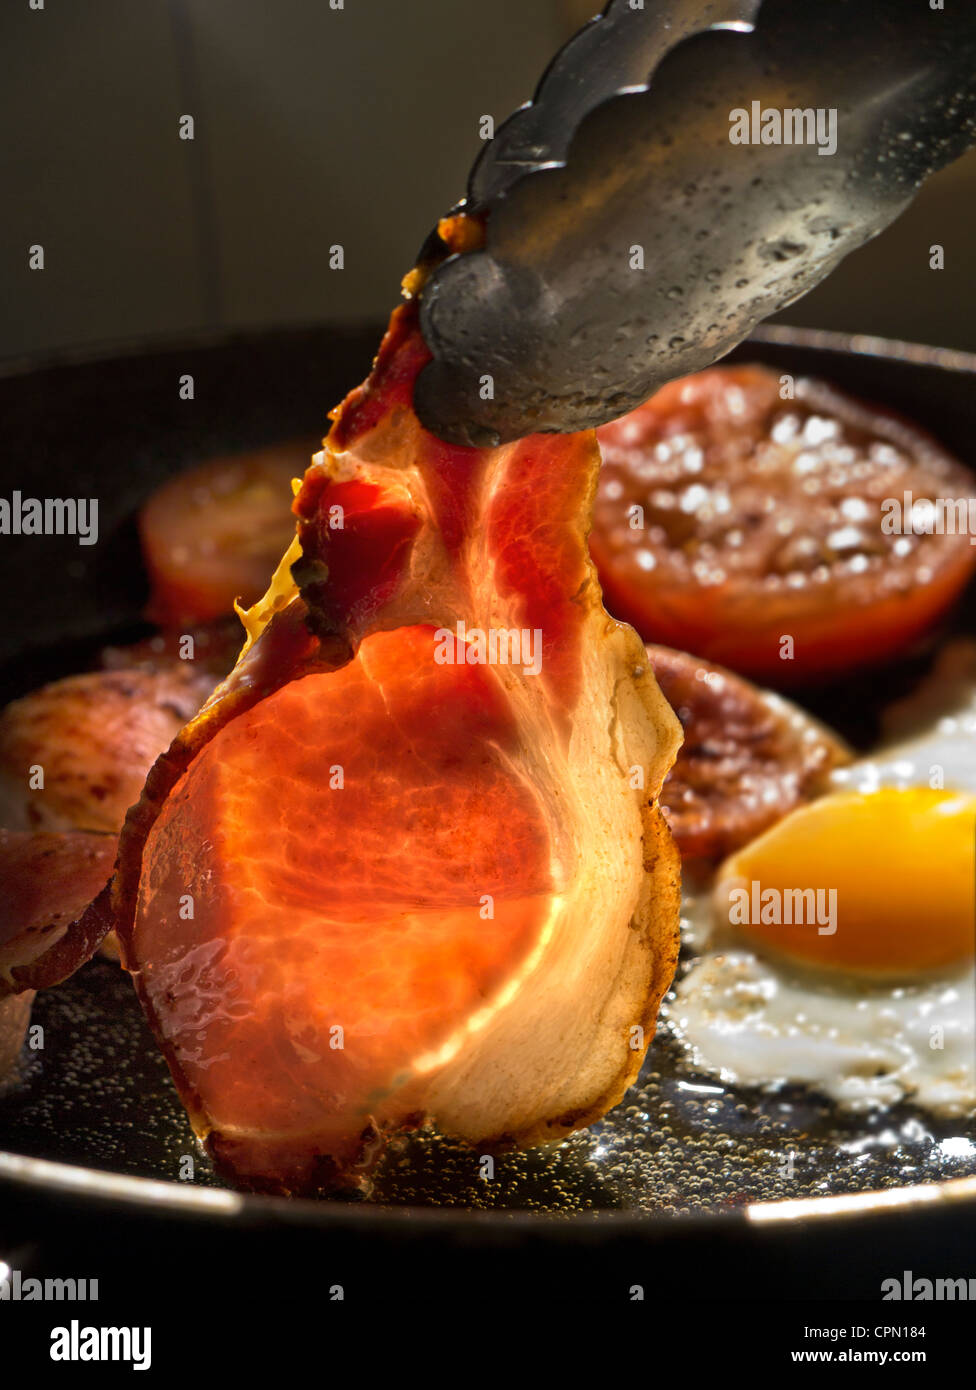 Shaft of sunlight illuminates a rasher of organic back bacon being turned in a hot frying pan containing fried egg - Stock Image